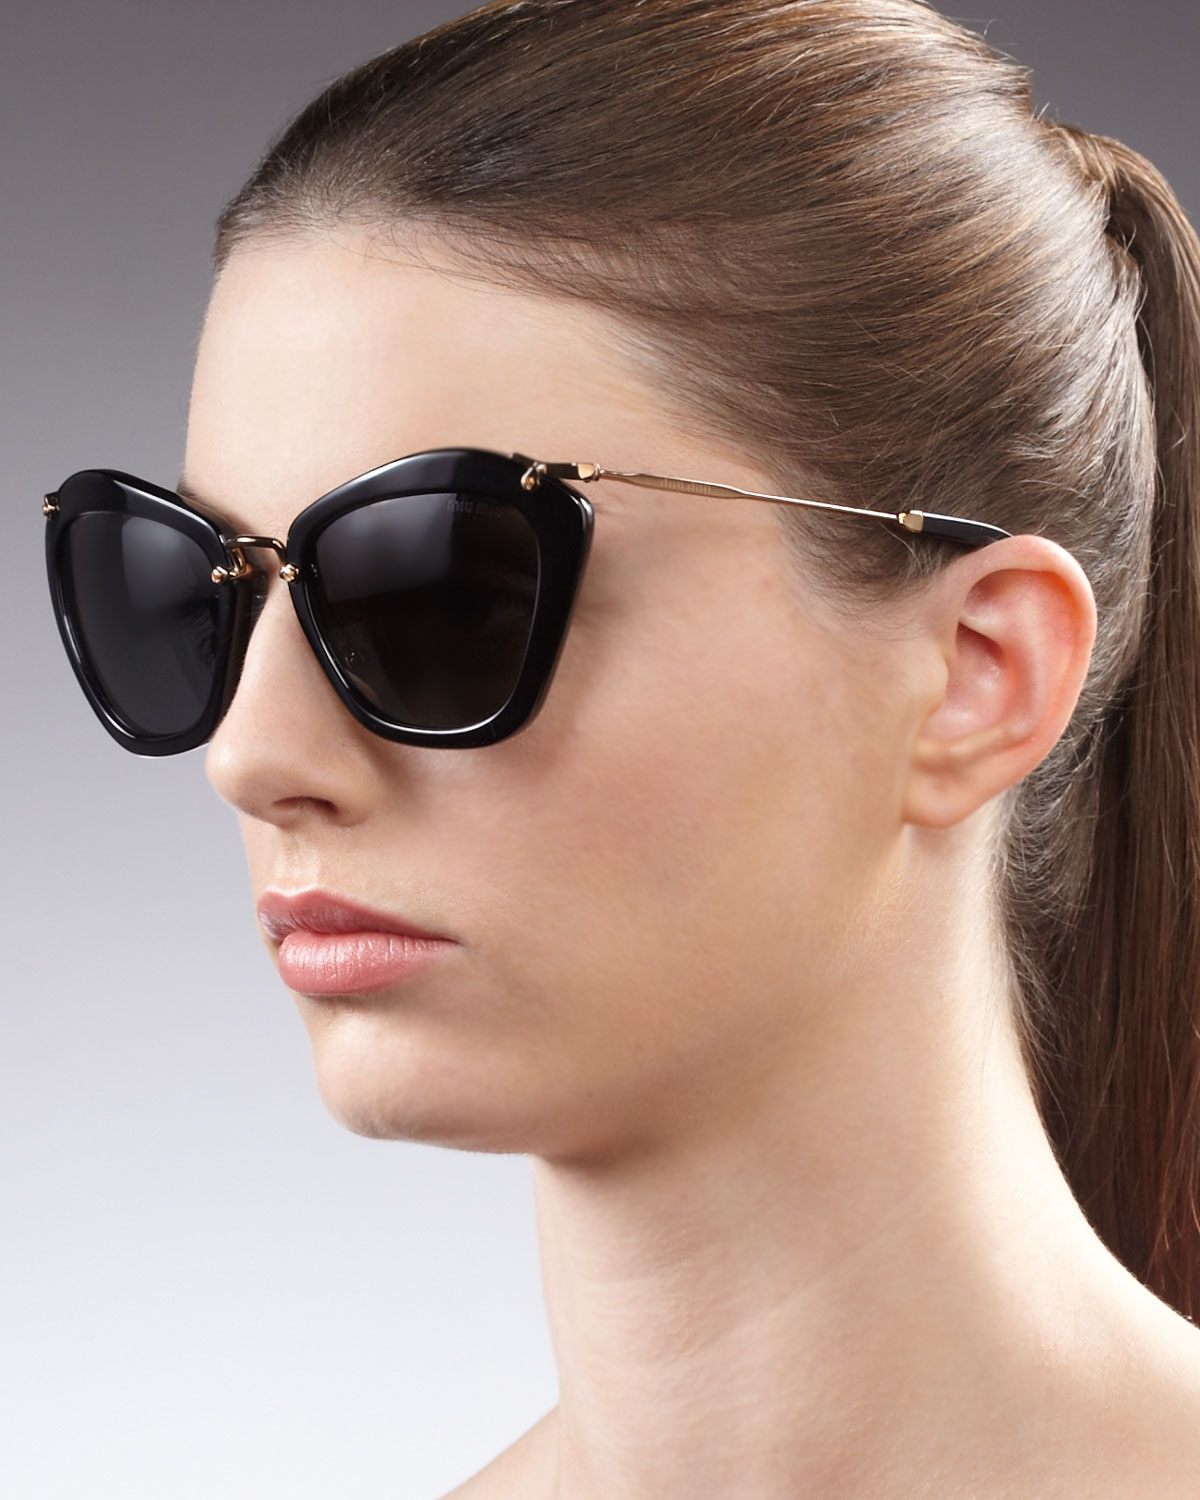 633273a0606 Lyst - Miu Miu Catwalk Sunglasses in Black